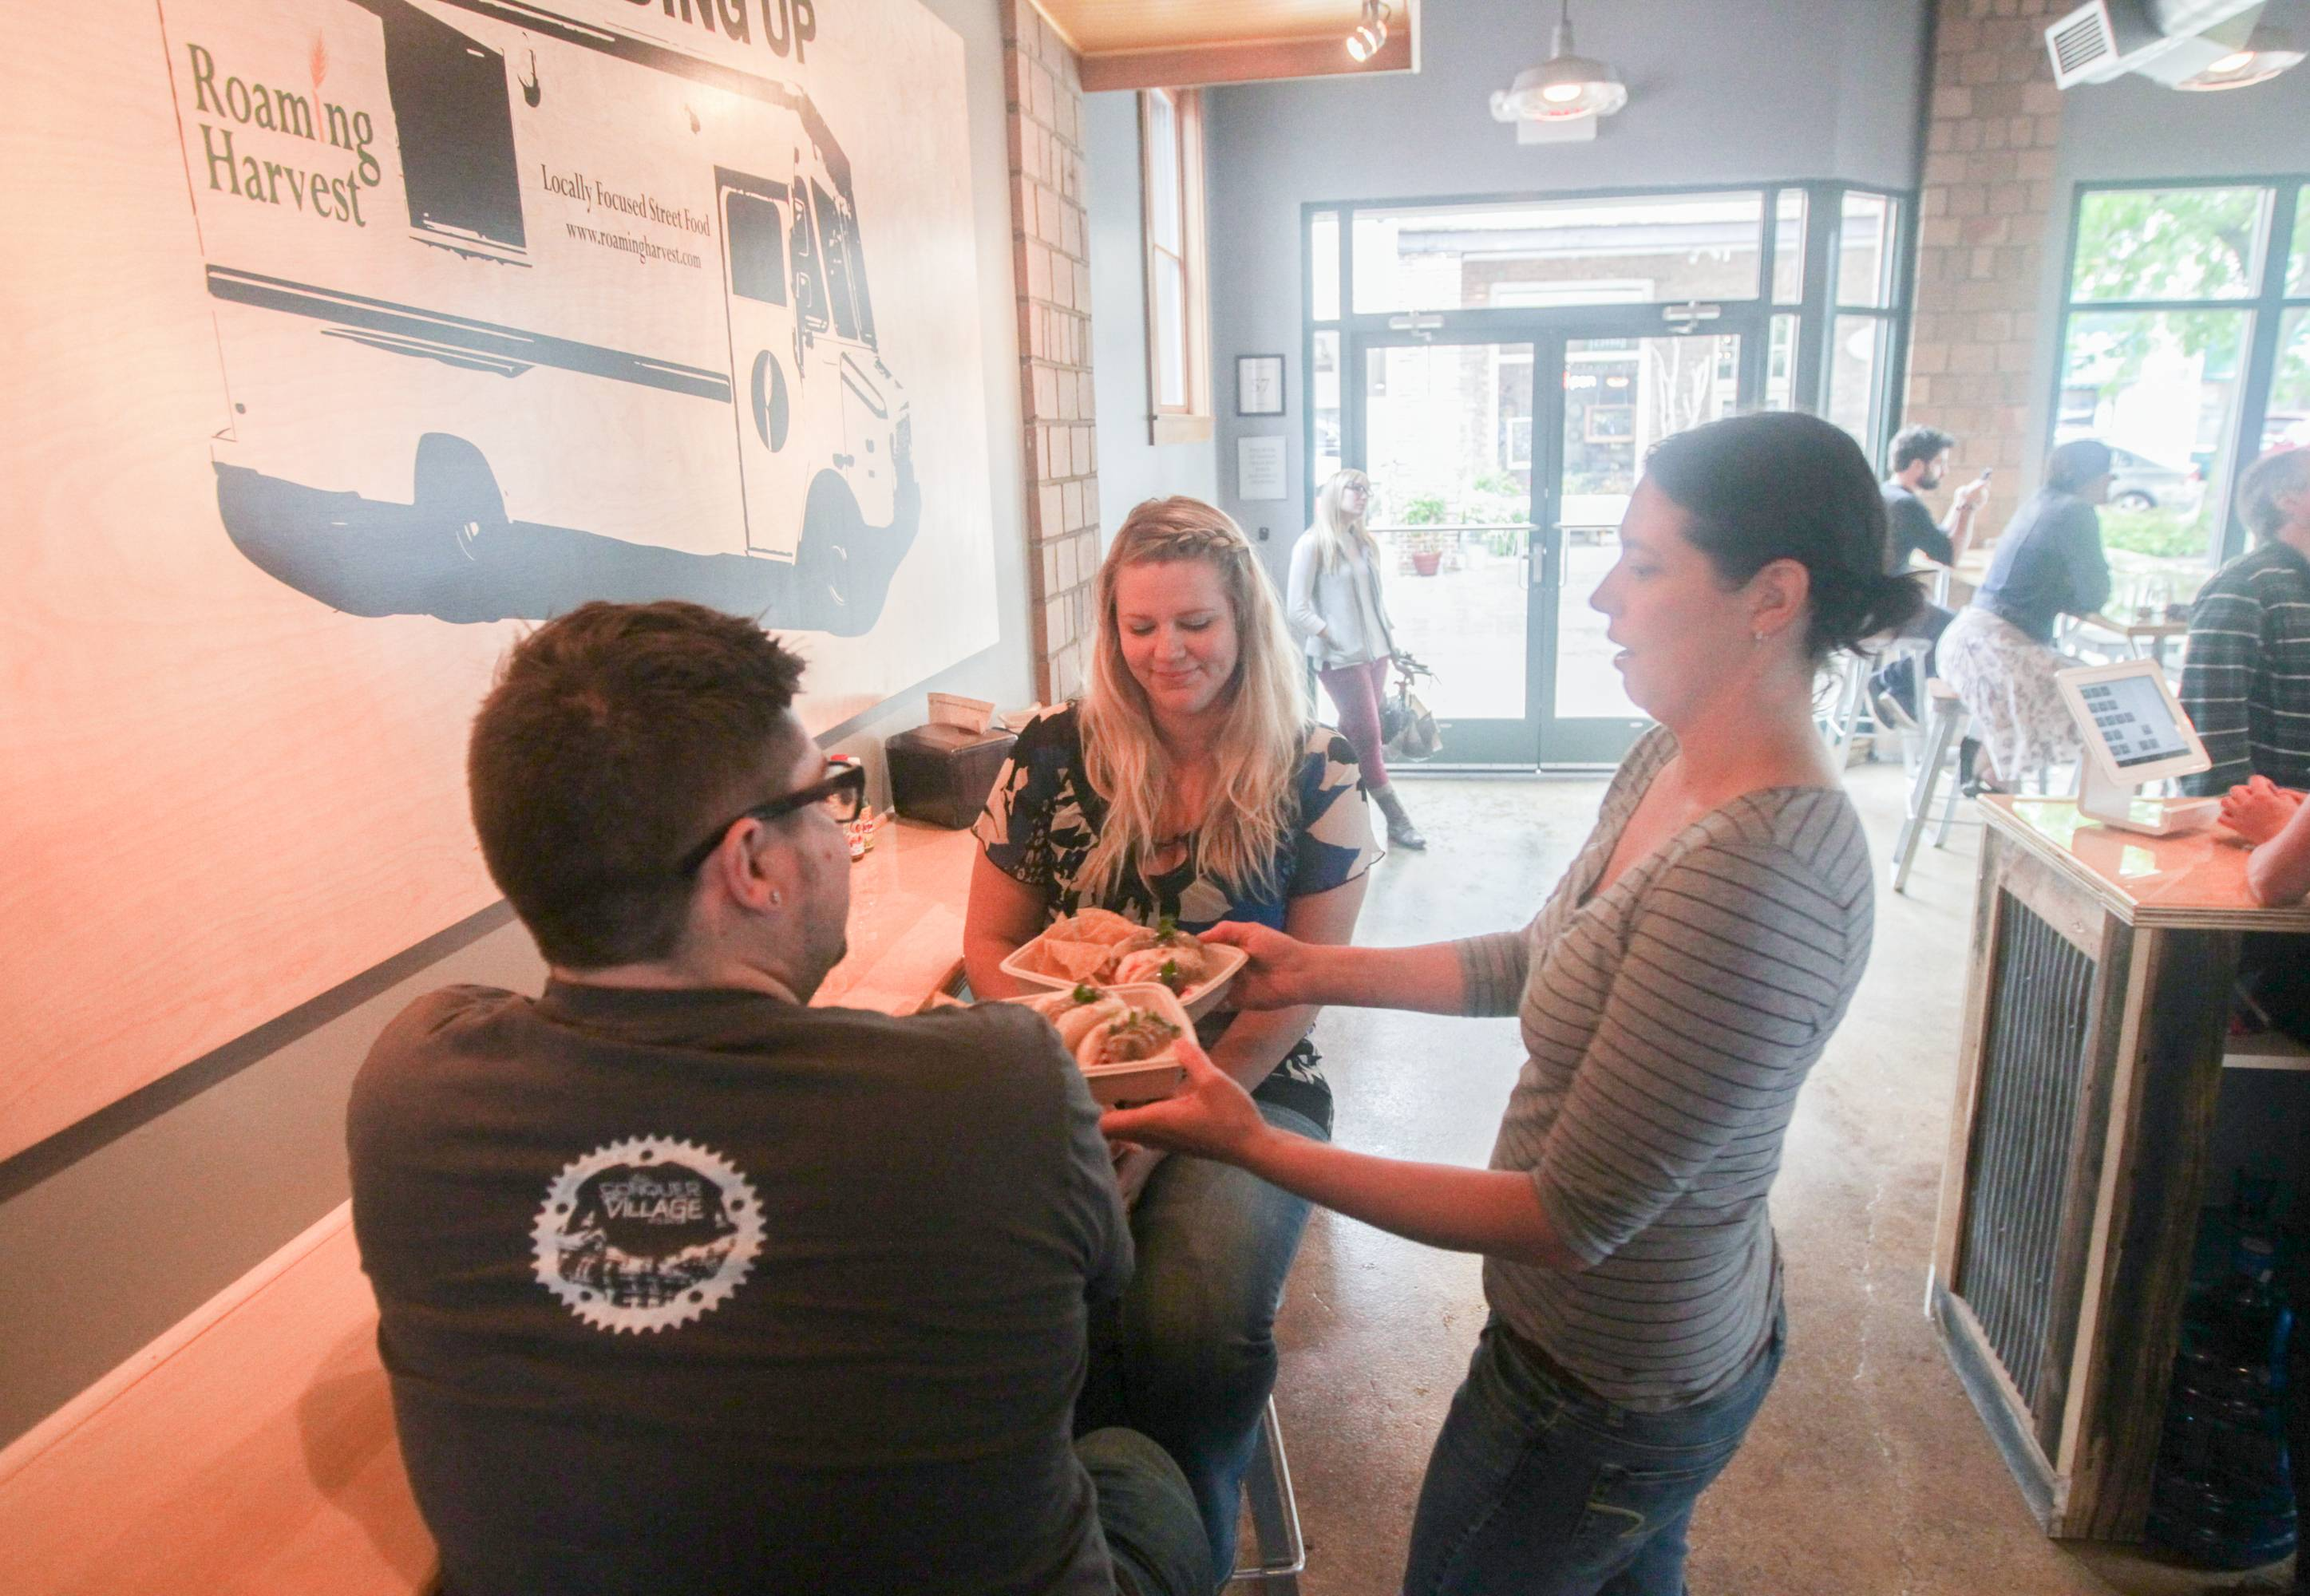 Lance Hill, left, and Chelsea Hill, both of Traverse City, are being served by Rebecca Brown, co-owner at Harvest in downtown Traverse City, Mich.